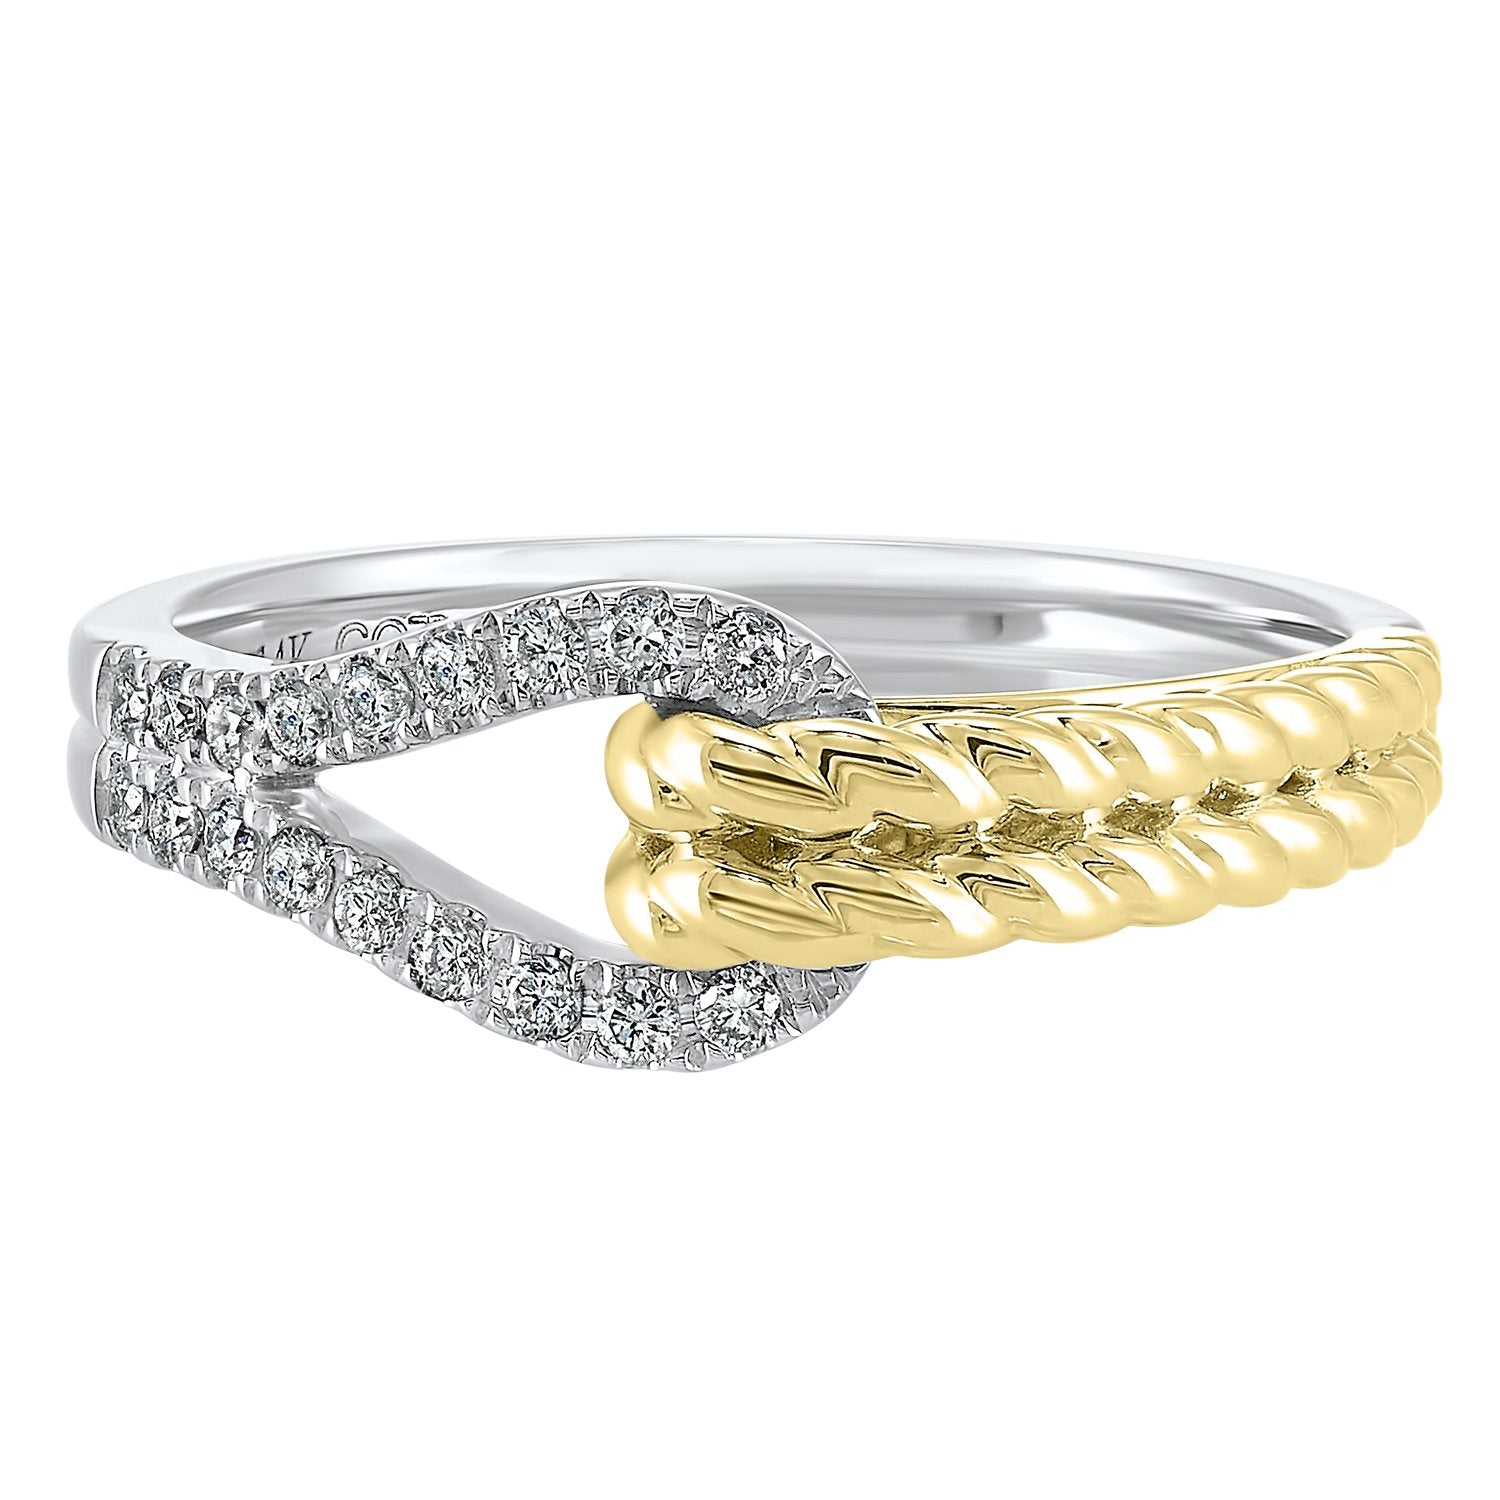 14KT Two-Tone Diamond Ring 1/6 ctw